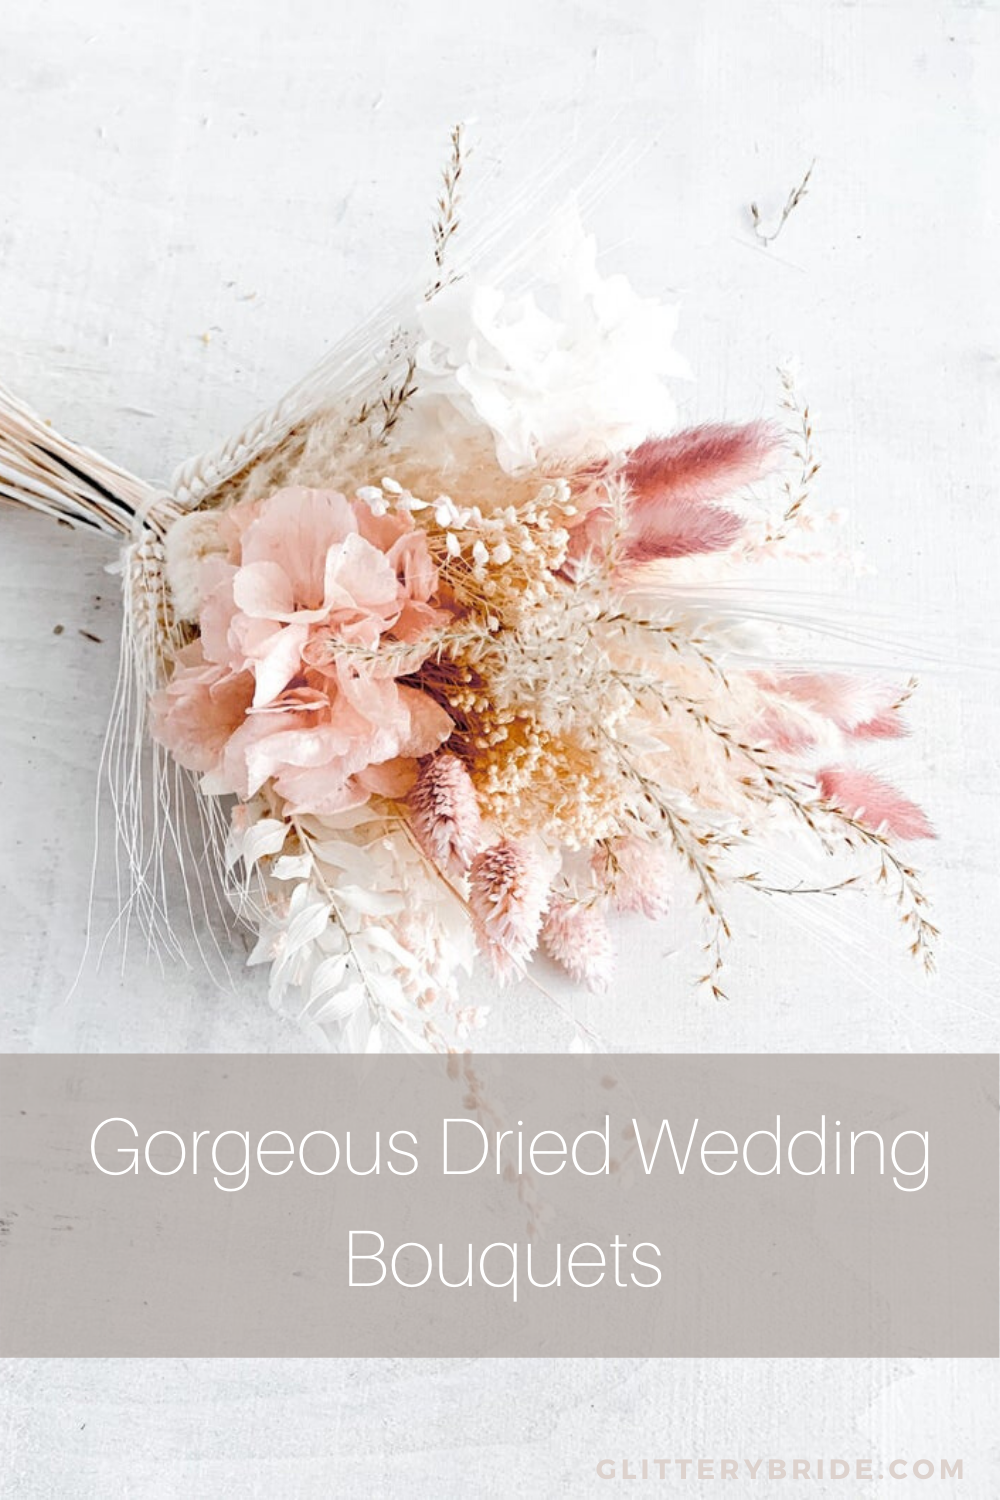 choose greenhouse wedding bouquets for your wedding 8 - Choose Greenhouse Wedding Bouquets for Your Wedding